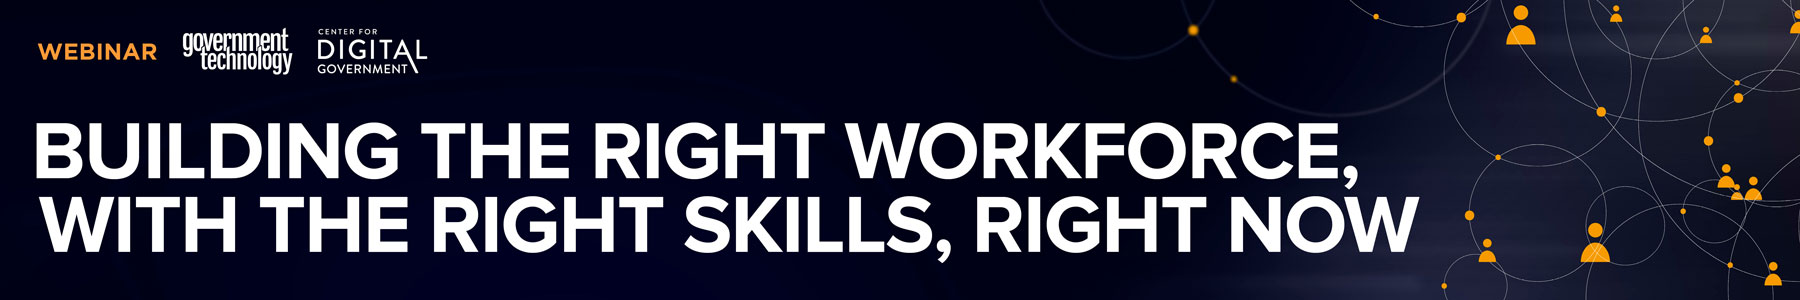 Building the Right Workforce, With the Right Skills, Right Now